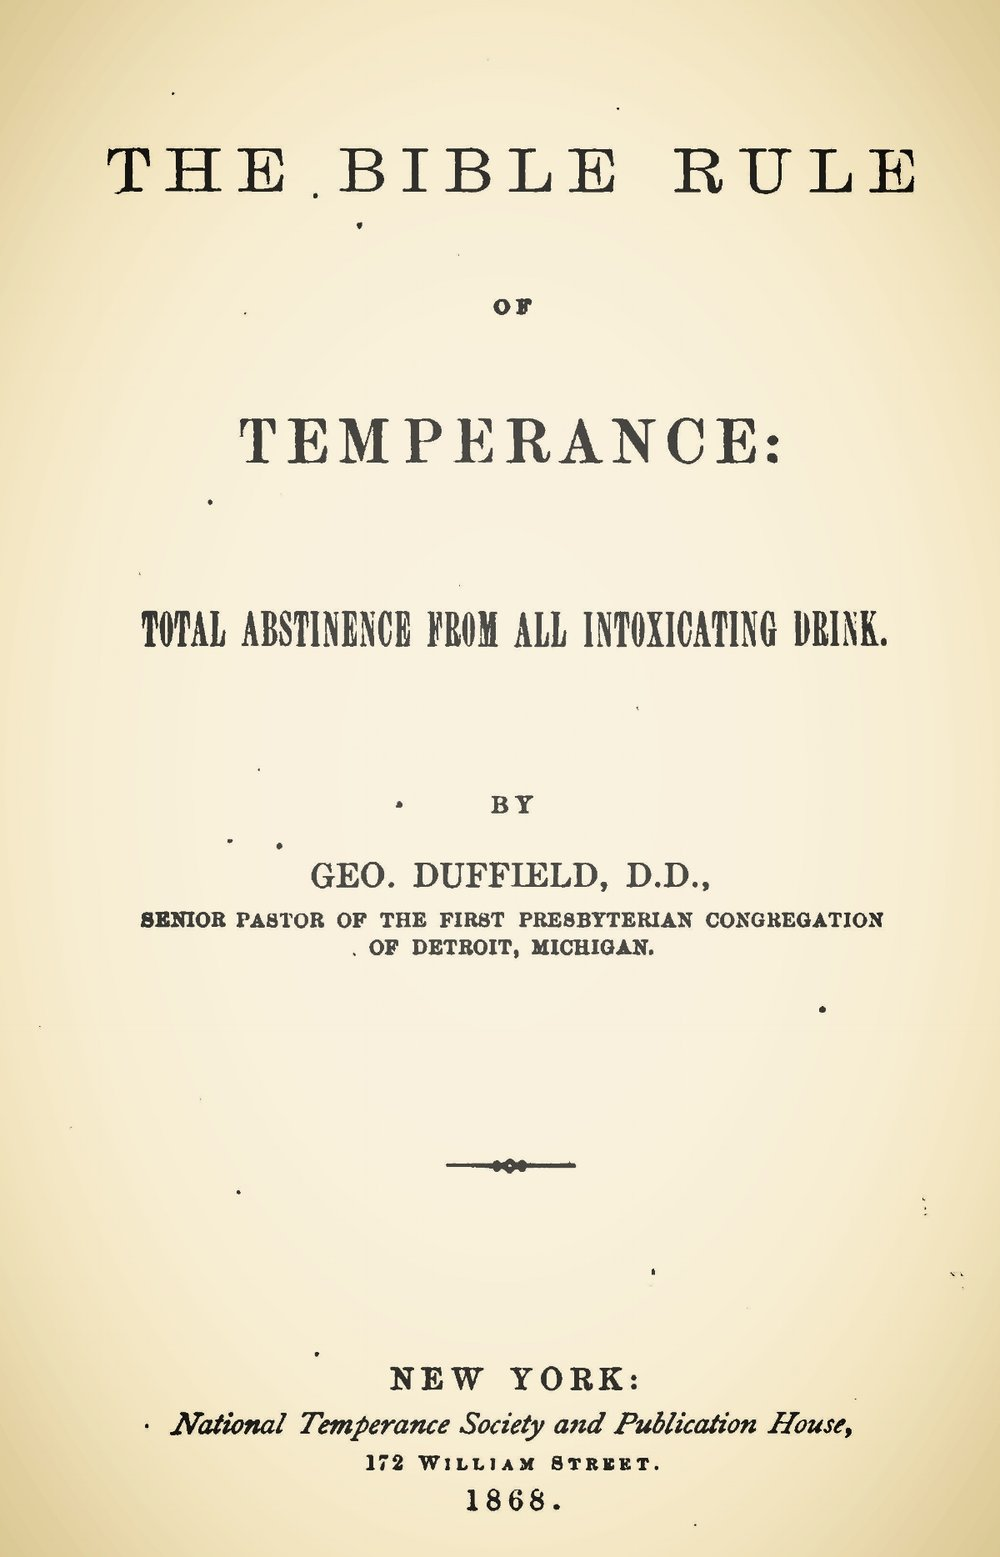 Duffield, IV, George, The Bible Rule of Temperance Title Page.jpg